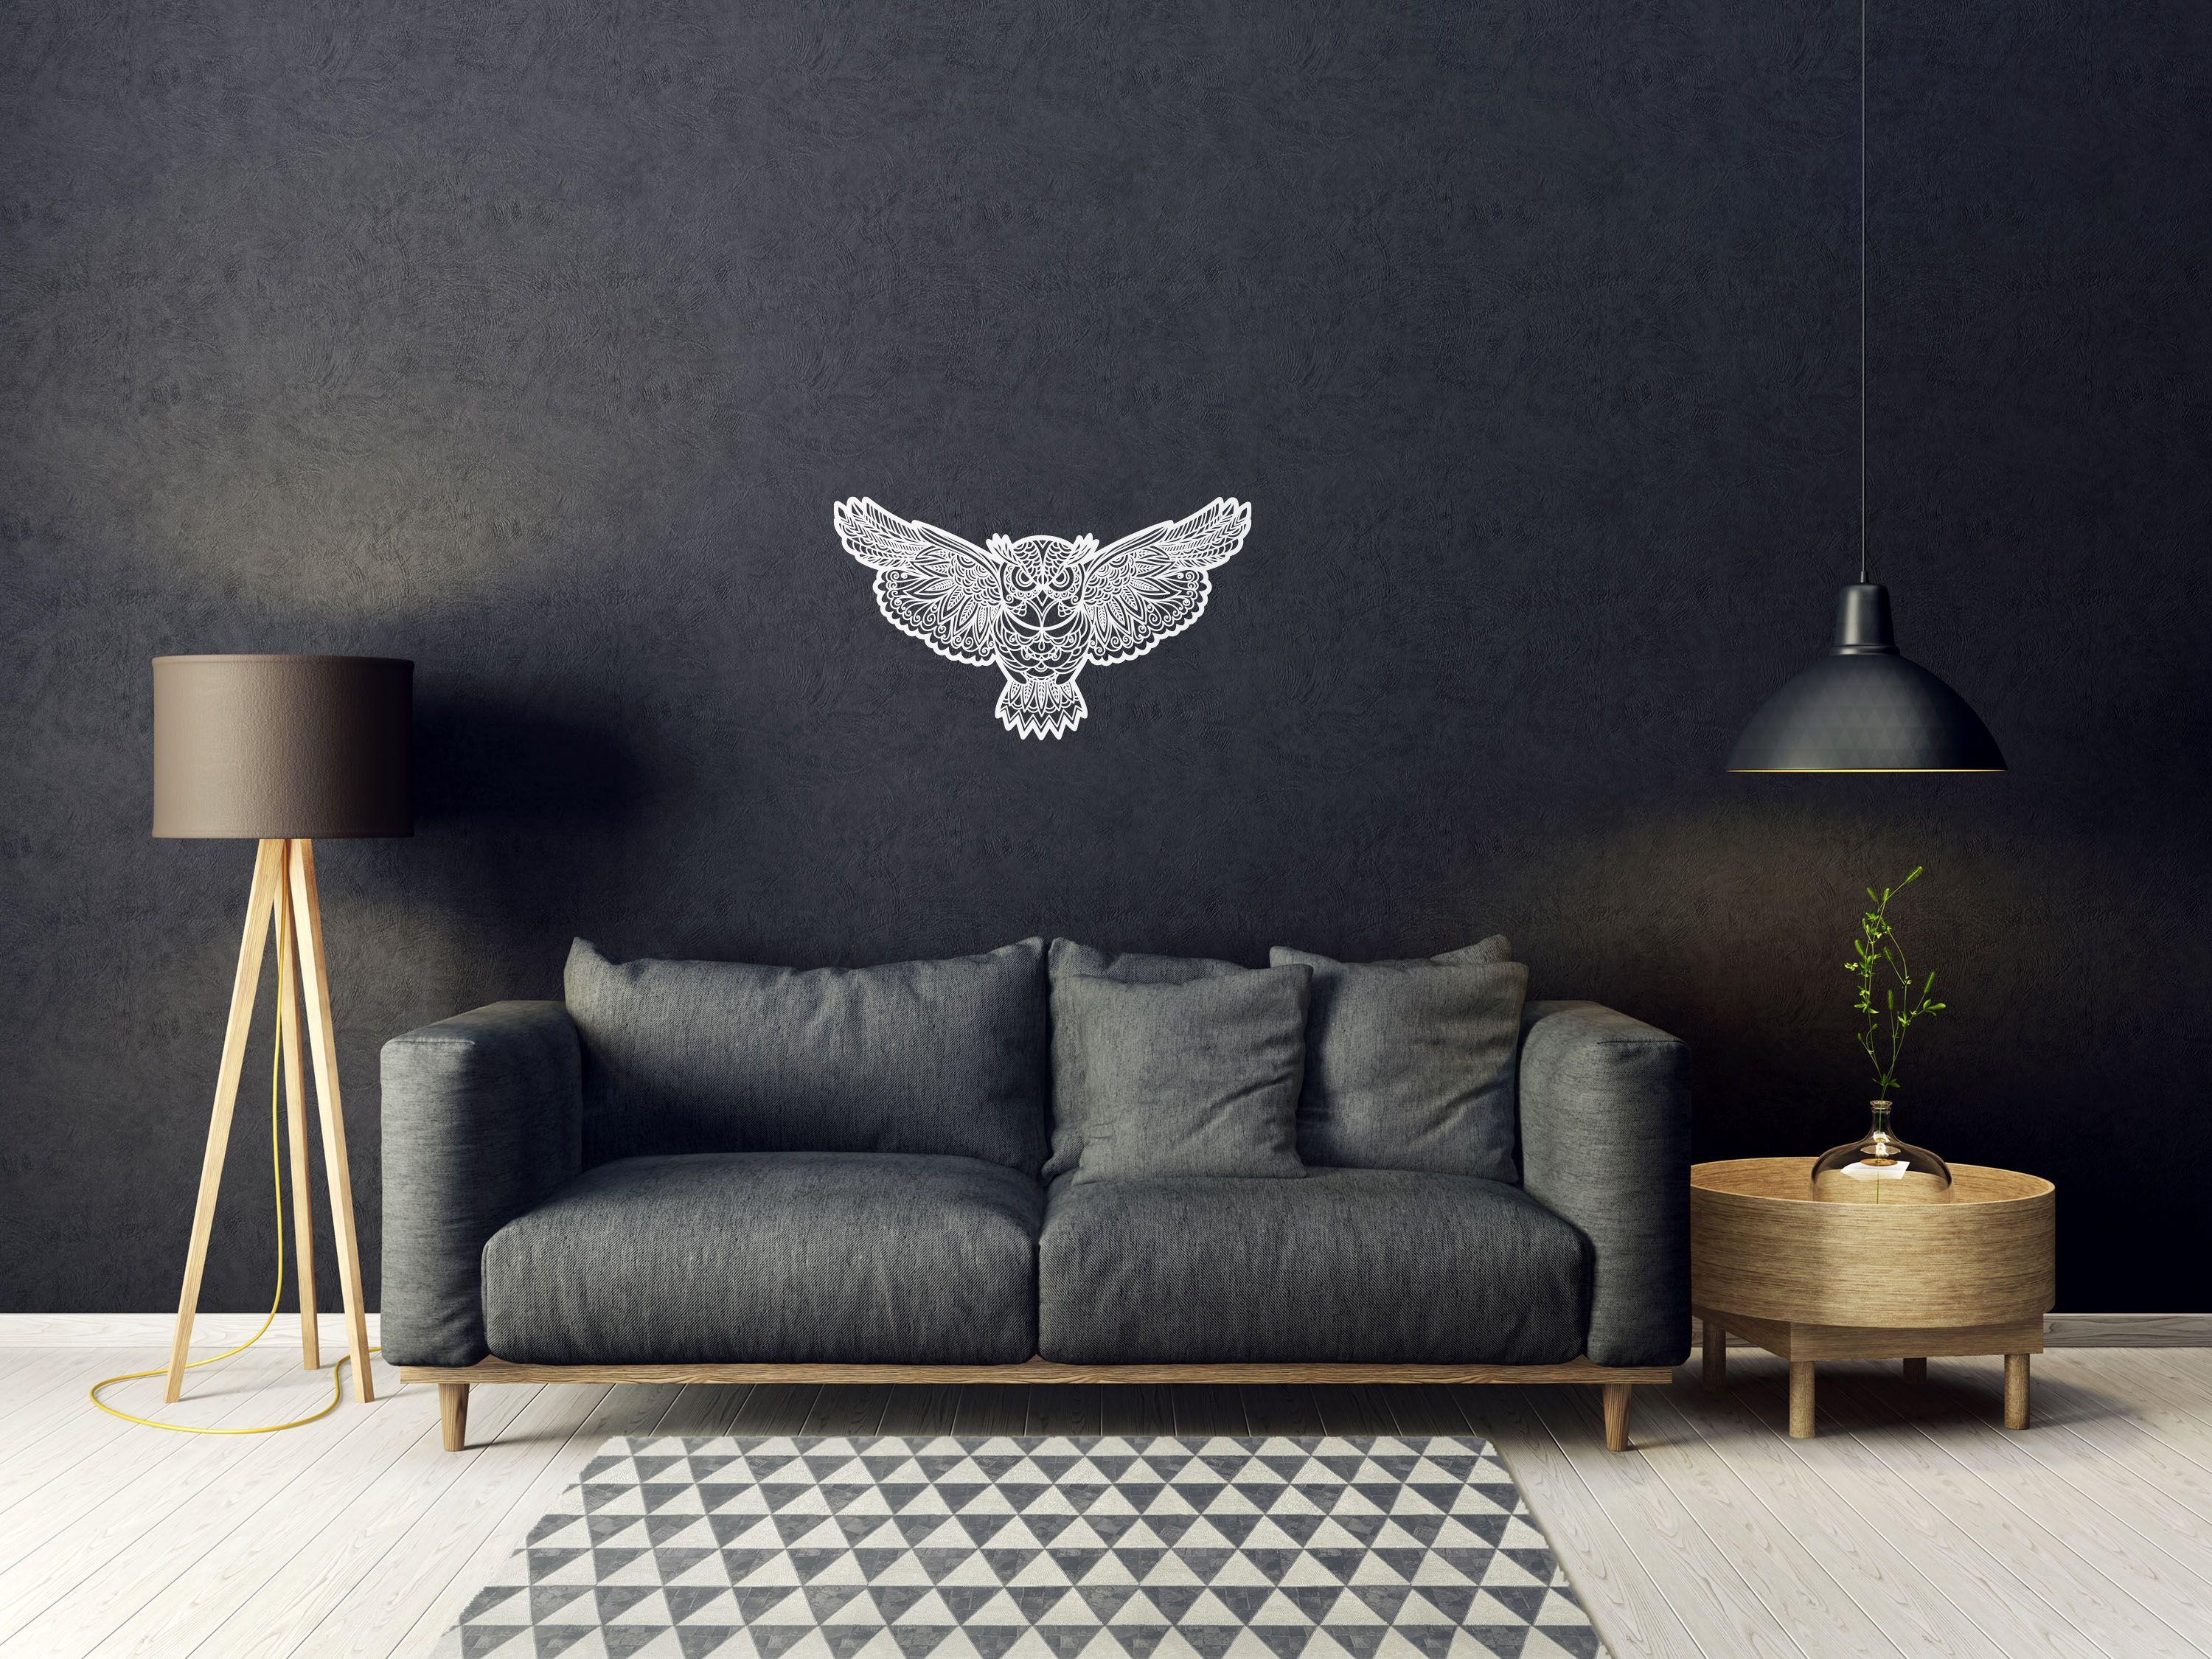 Pin On Home Deco